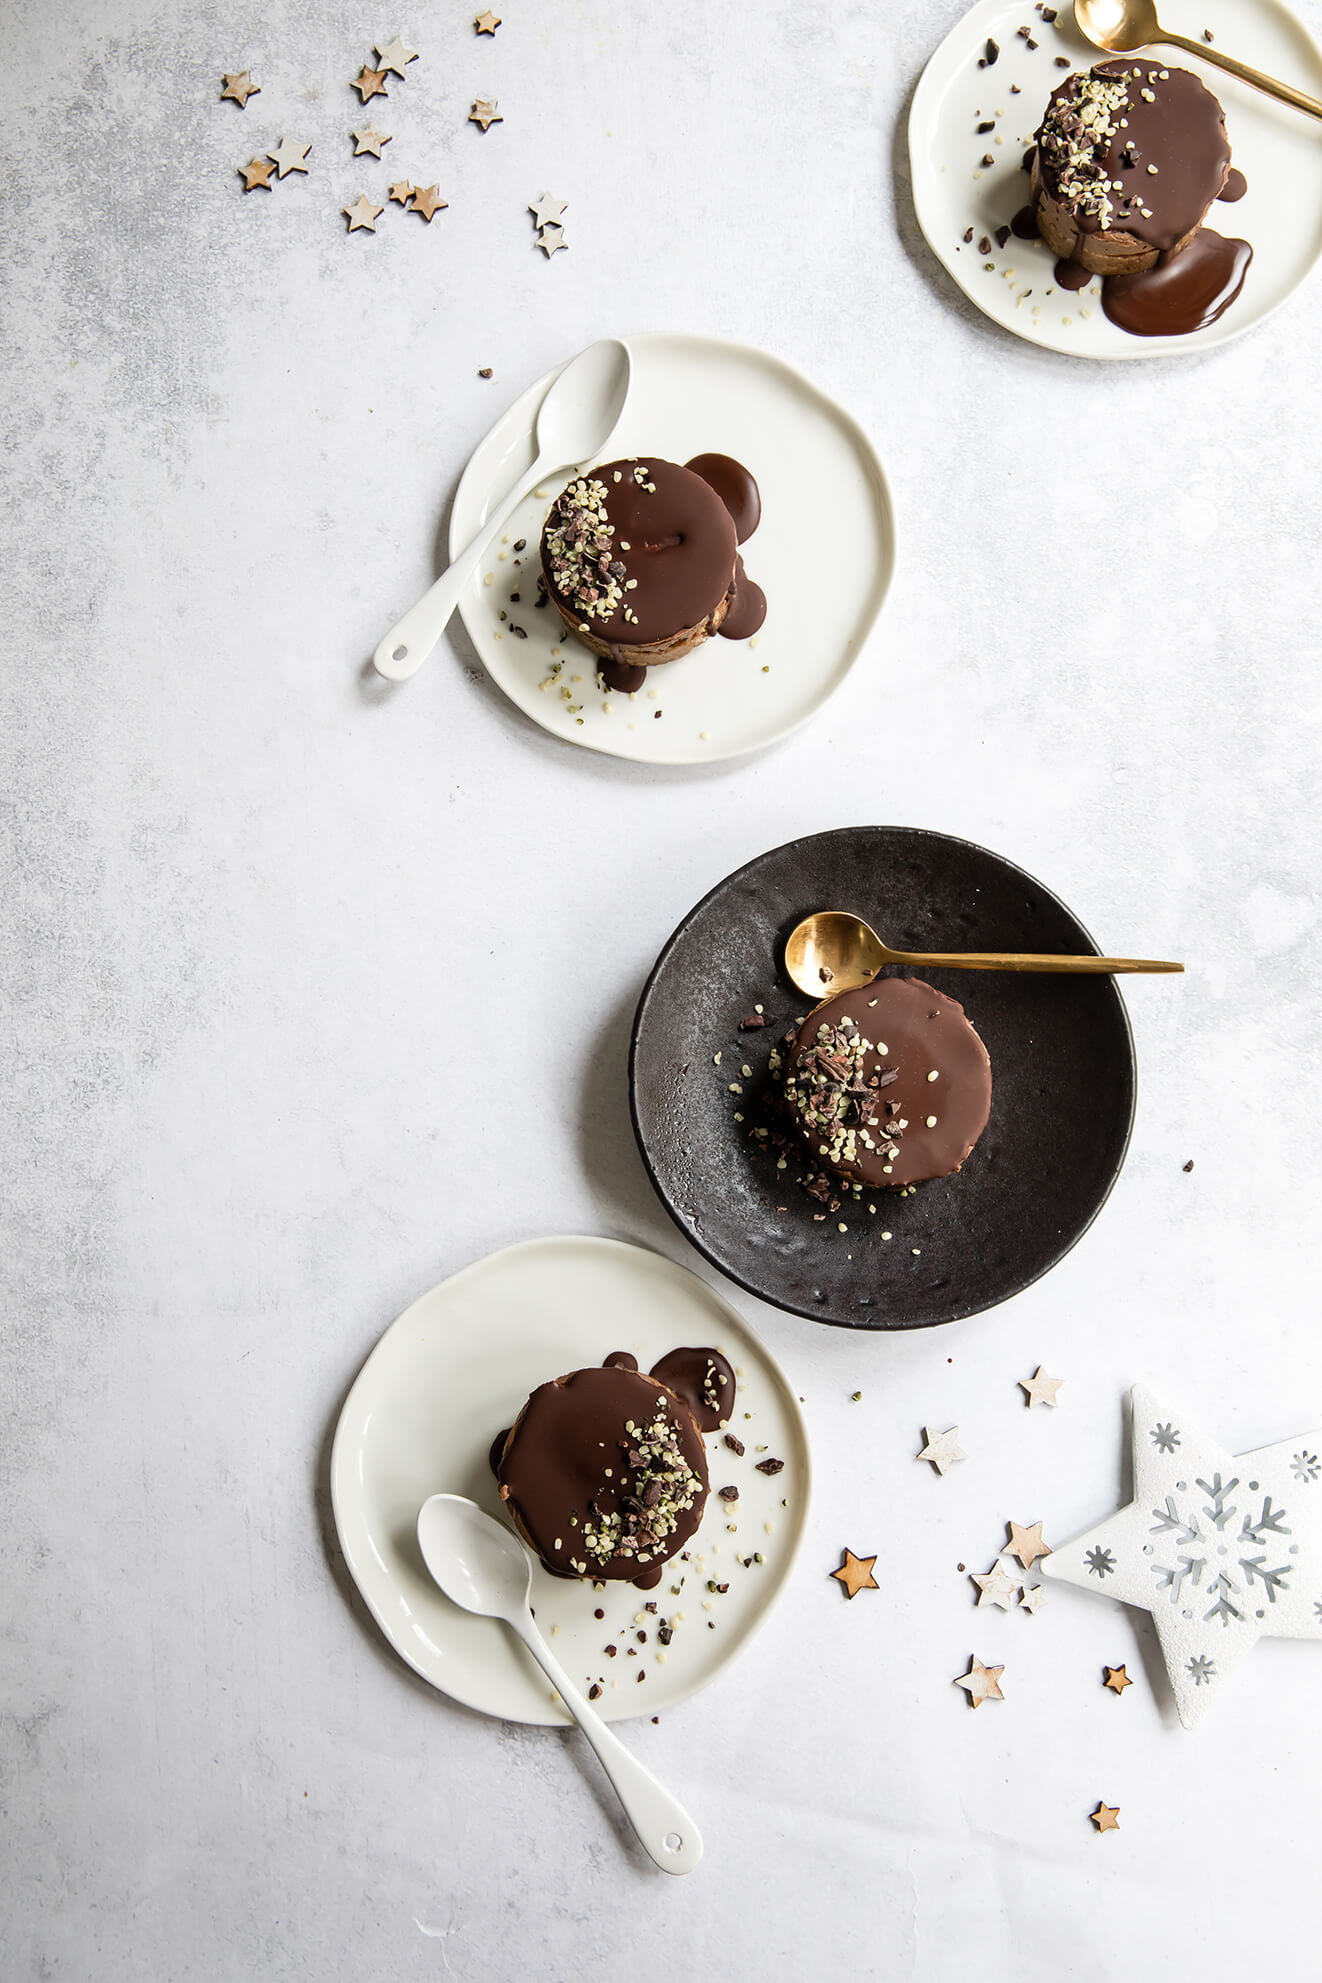 Raw Vegan Chocolate Orange and Chestnut Cakes